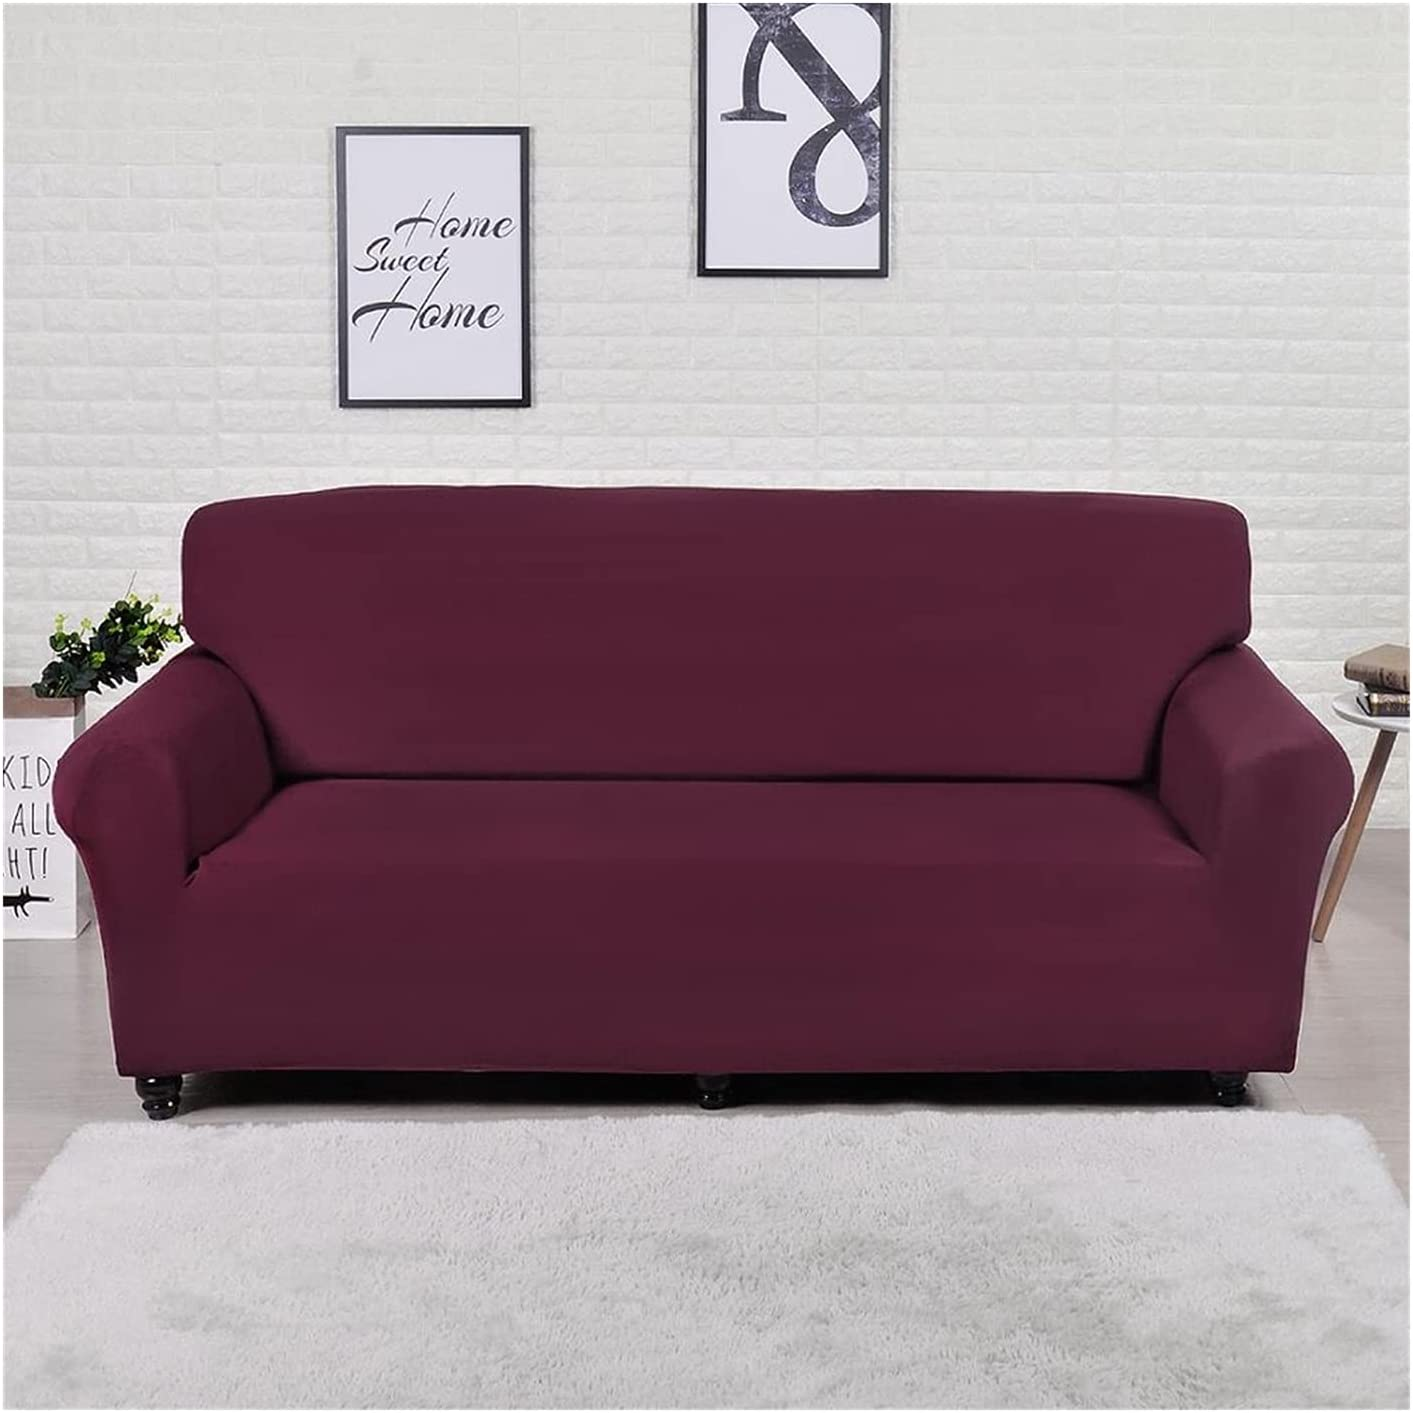 JDKJ NEW before selling Houston Mall ☆ Solid Color Sofa Cover Elasticity Couch Big Stretch